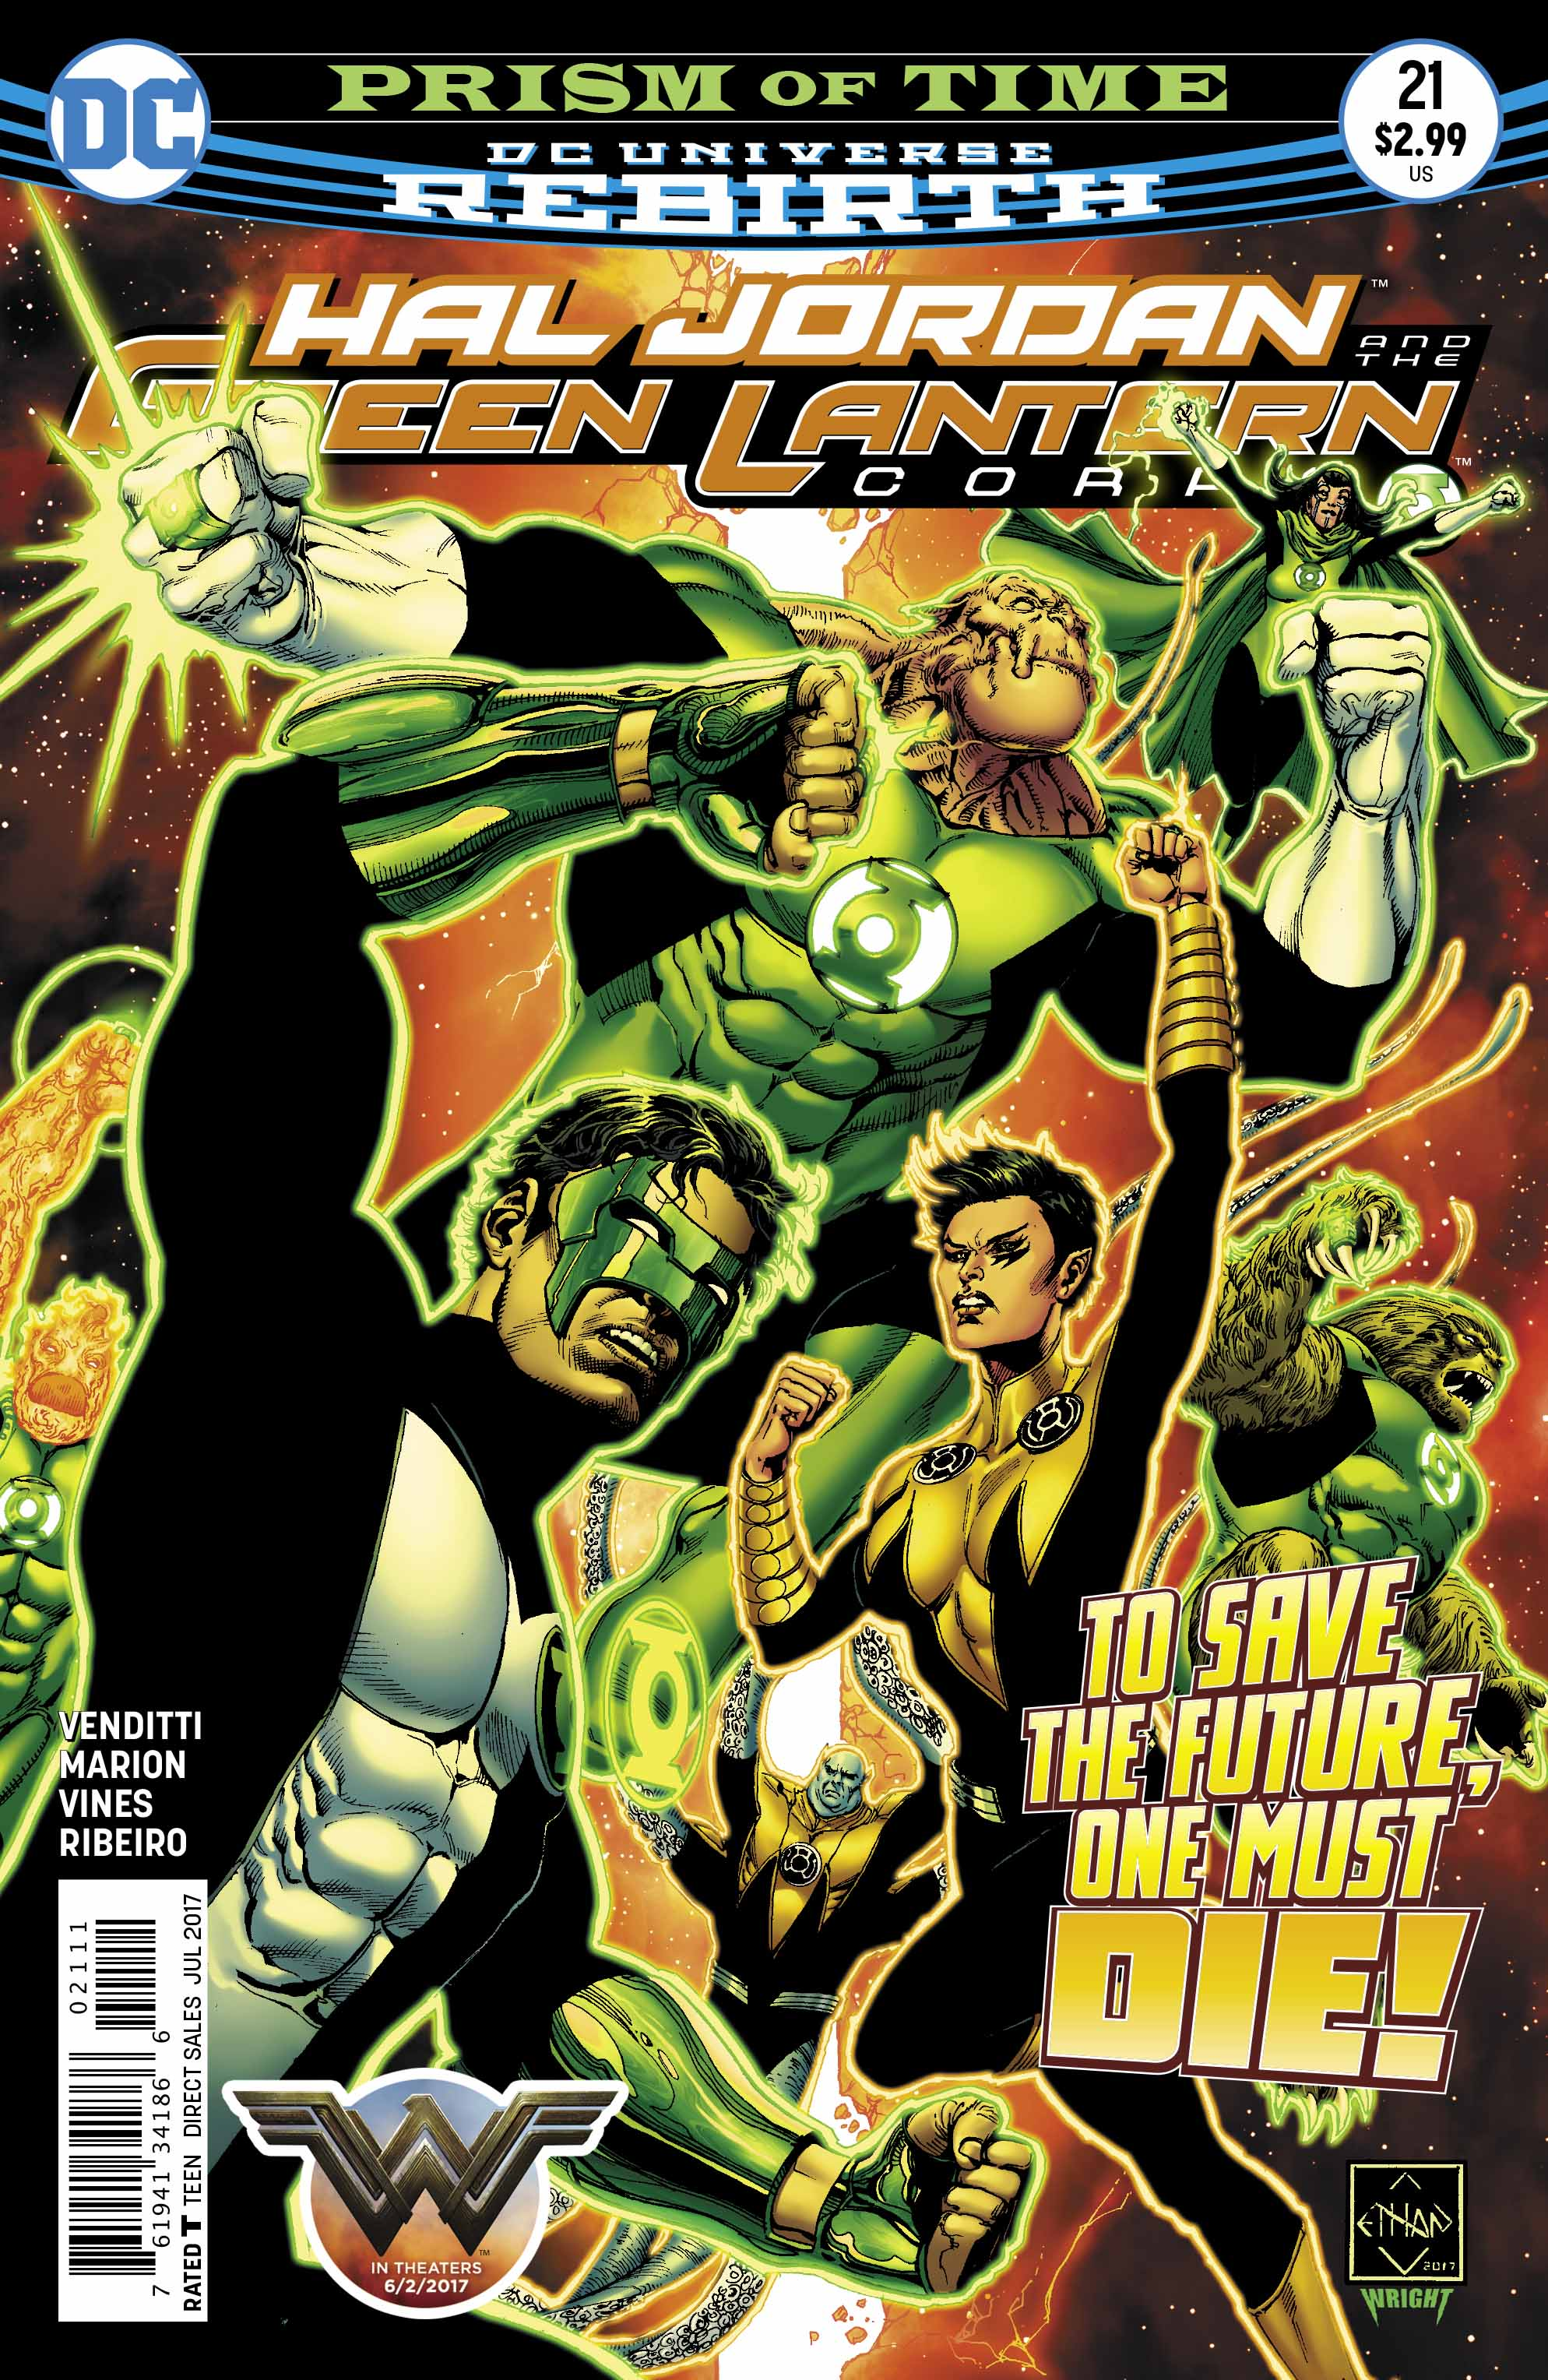 Preview: Hal Jordan and the Green Lantern Corps #21